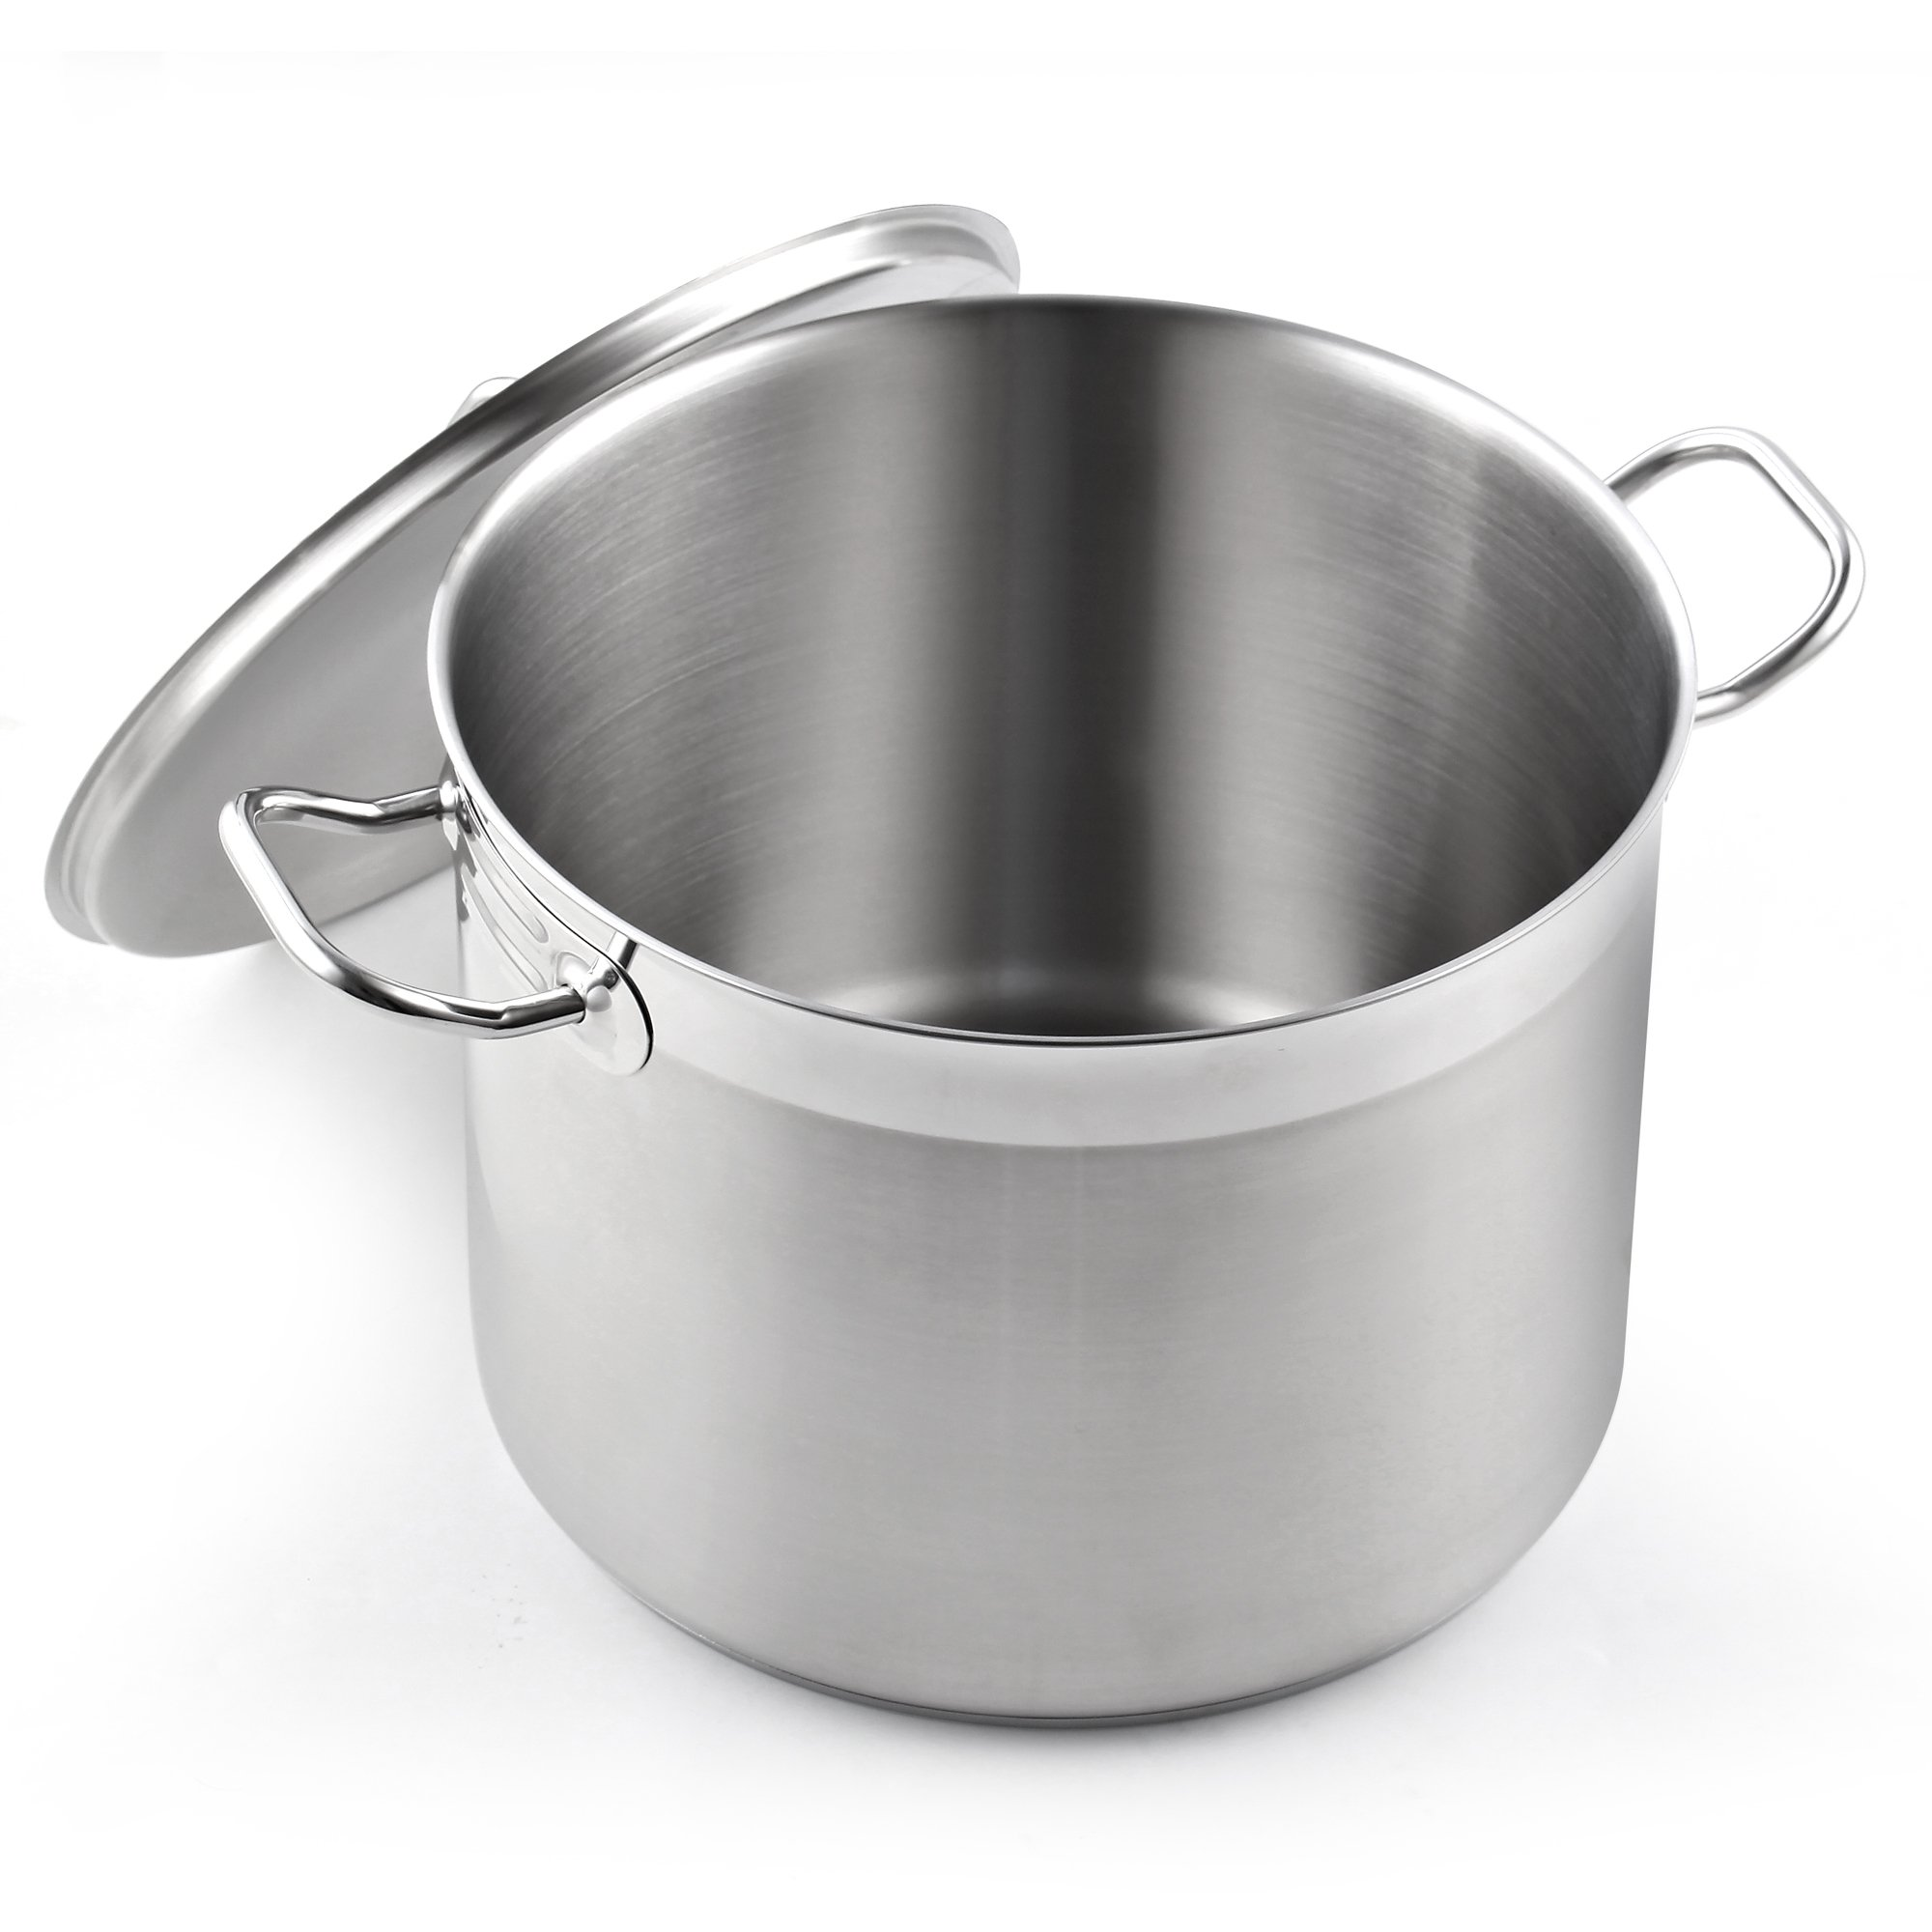 Cooks Standard NC-00330 Classic stockpot, 20 Quart, Stainless Steel by Cooks Standard